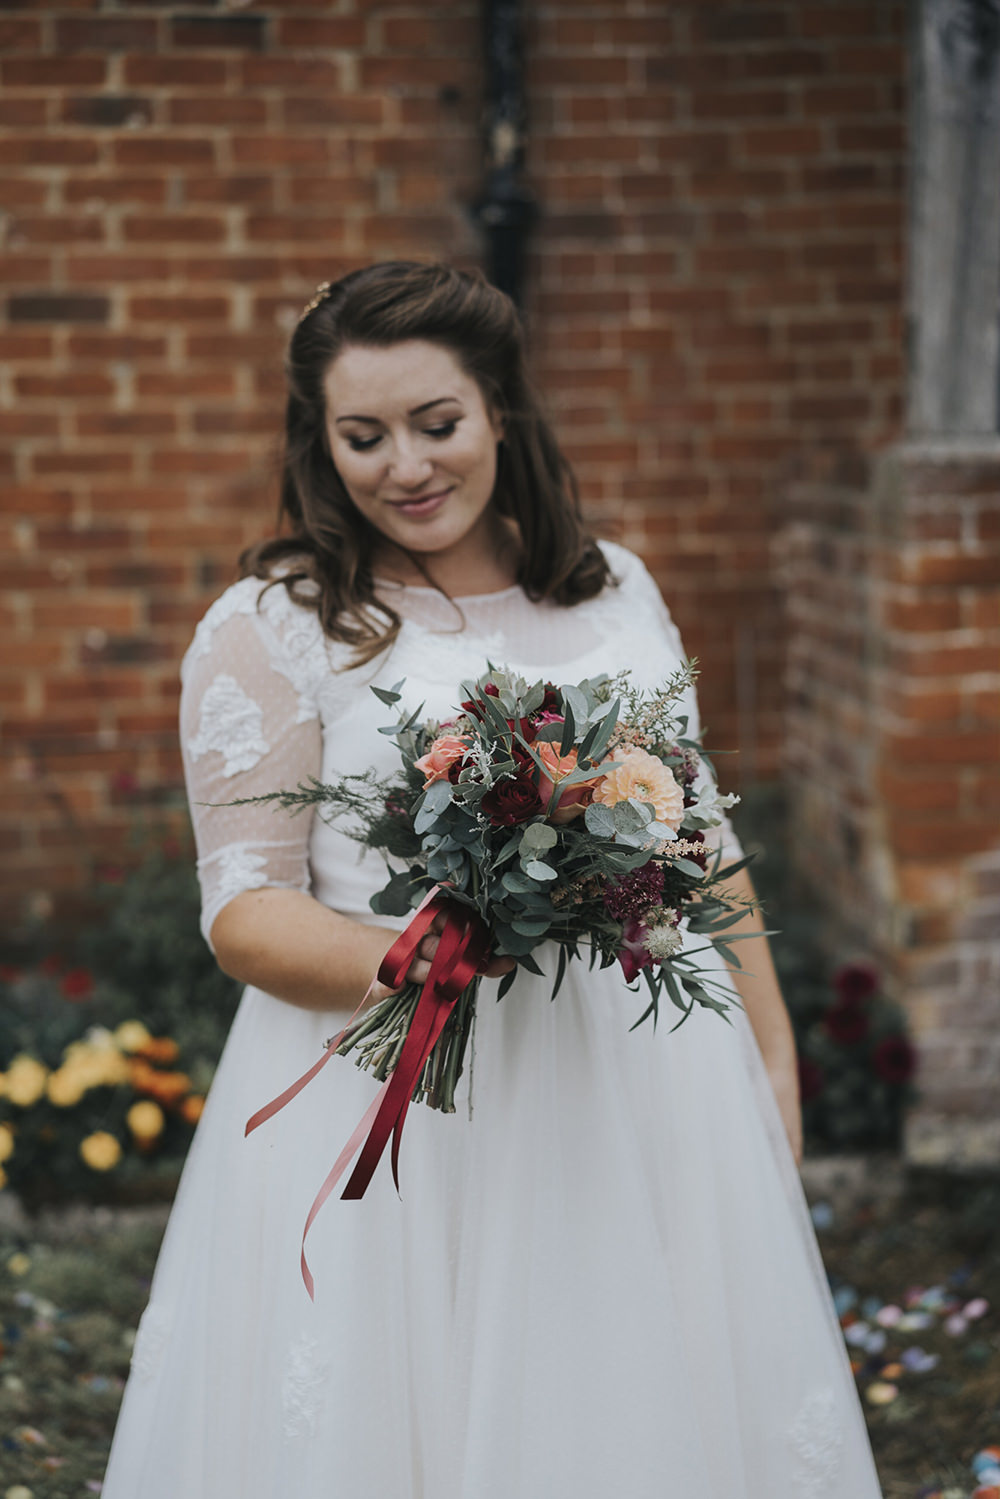 Bride Bridal Dress Gown Overlay Belt See Through Sleeves Burgundy Coral Dahlia Eucalyptus Bouquet Celestial Cow Shed Wedding Tora Baker Photography